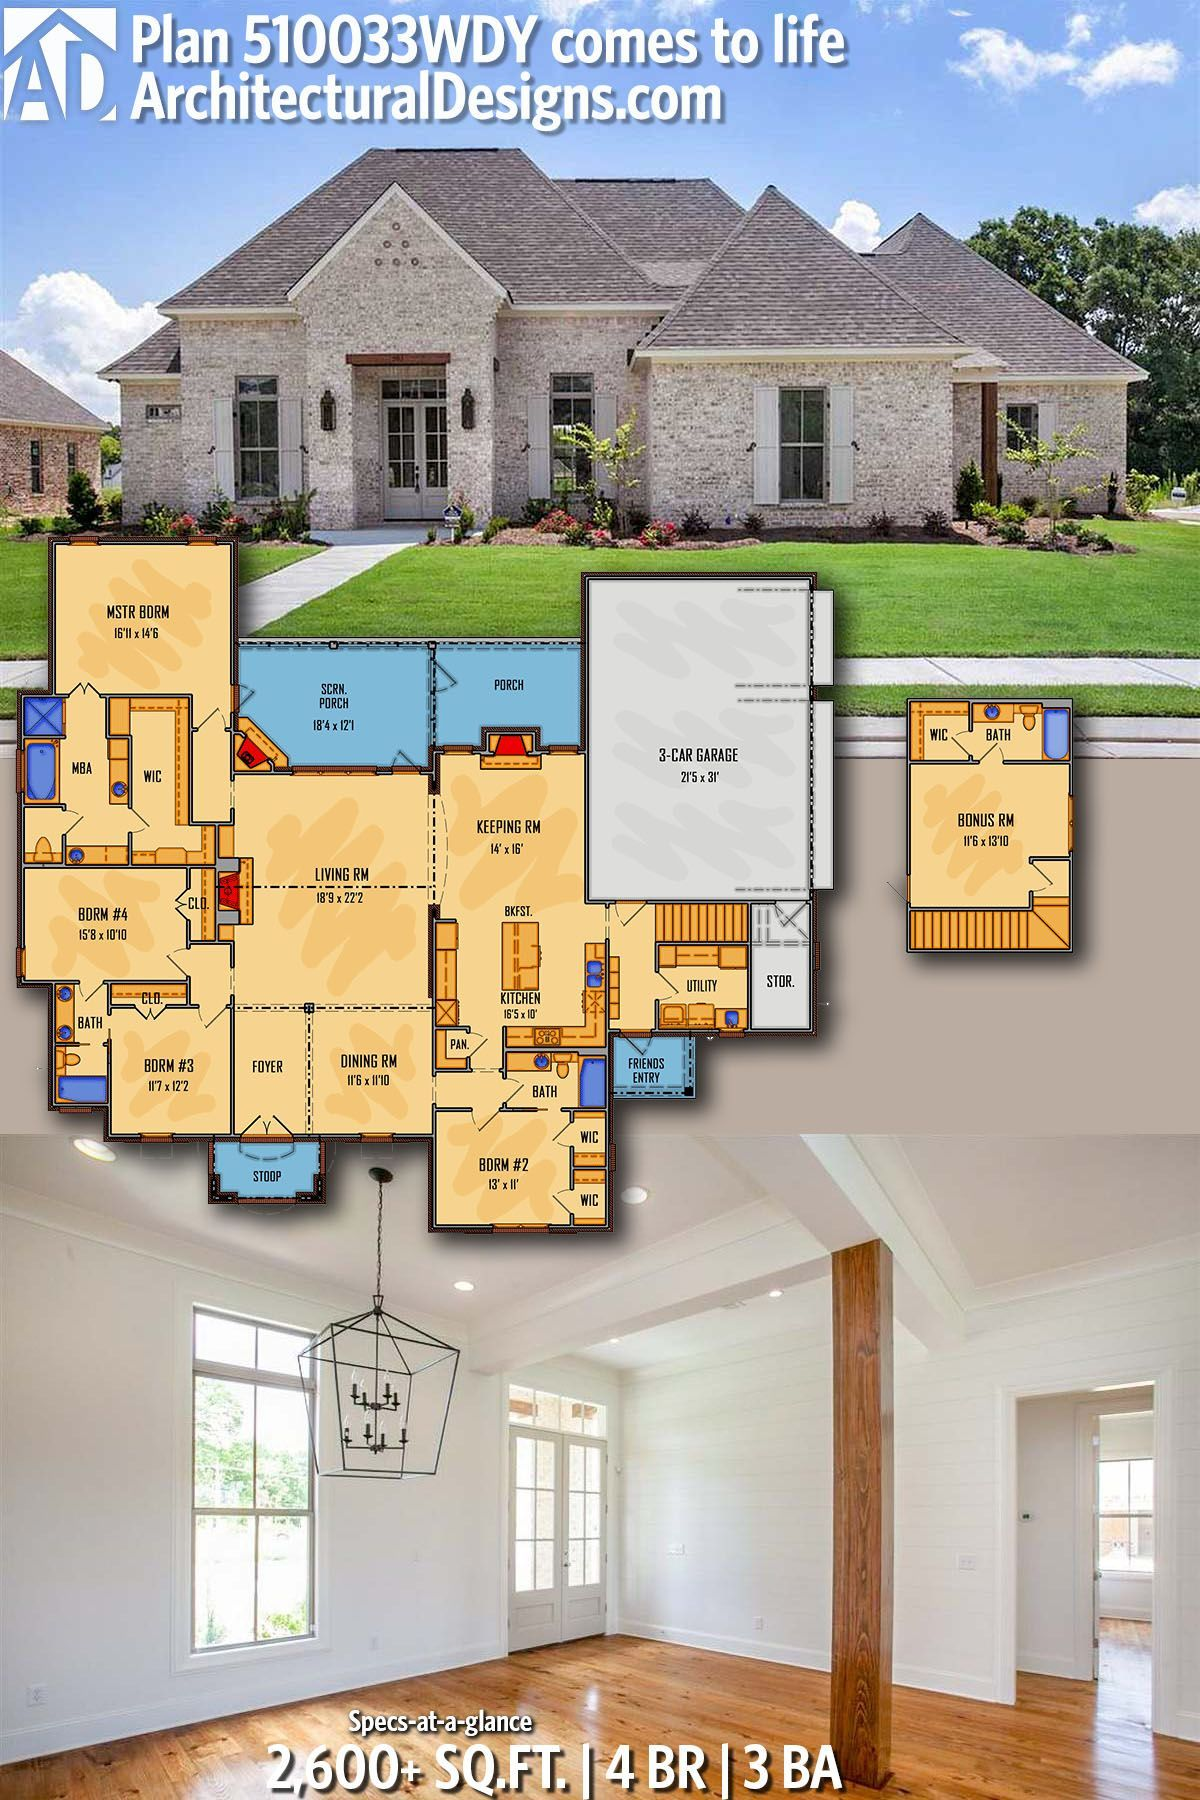 Can Work With This If Bedrooms To Side Are Study And Media And A Staircase Between Livin Architectural Design House Plans New House Plans Craftsman House Plans